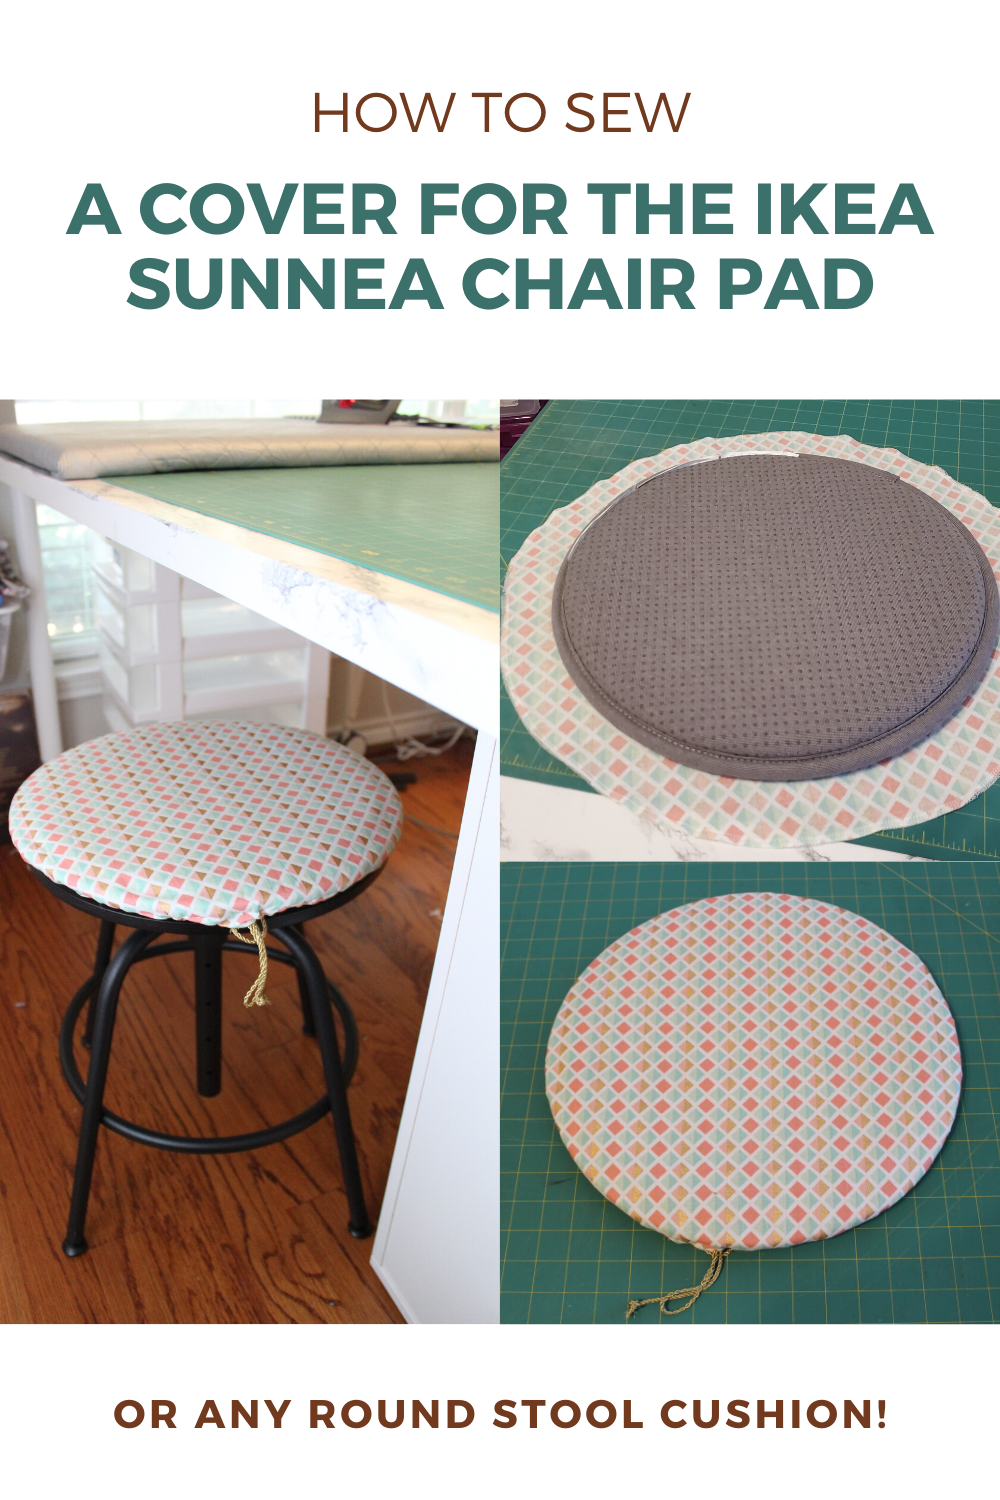 How To Sew A Round Cushion Cover Ikea Sunnea Stool Pad Hack In 2020 Round Cushion Round Chair Cushions Diy Cushion Covers